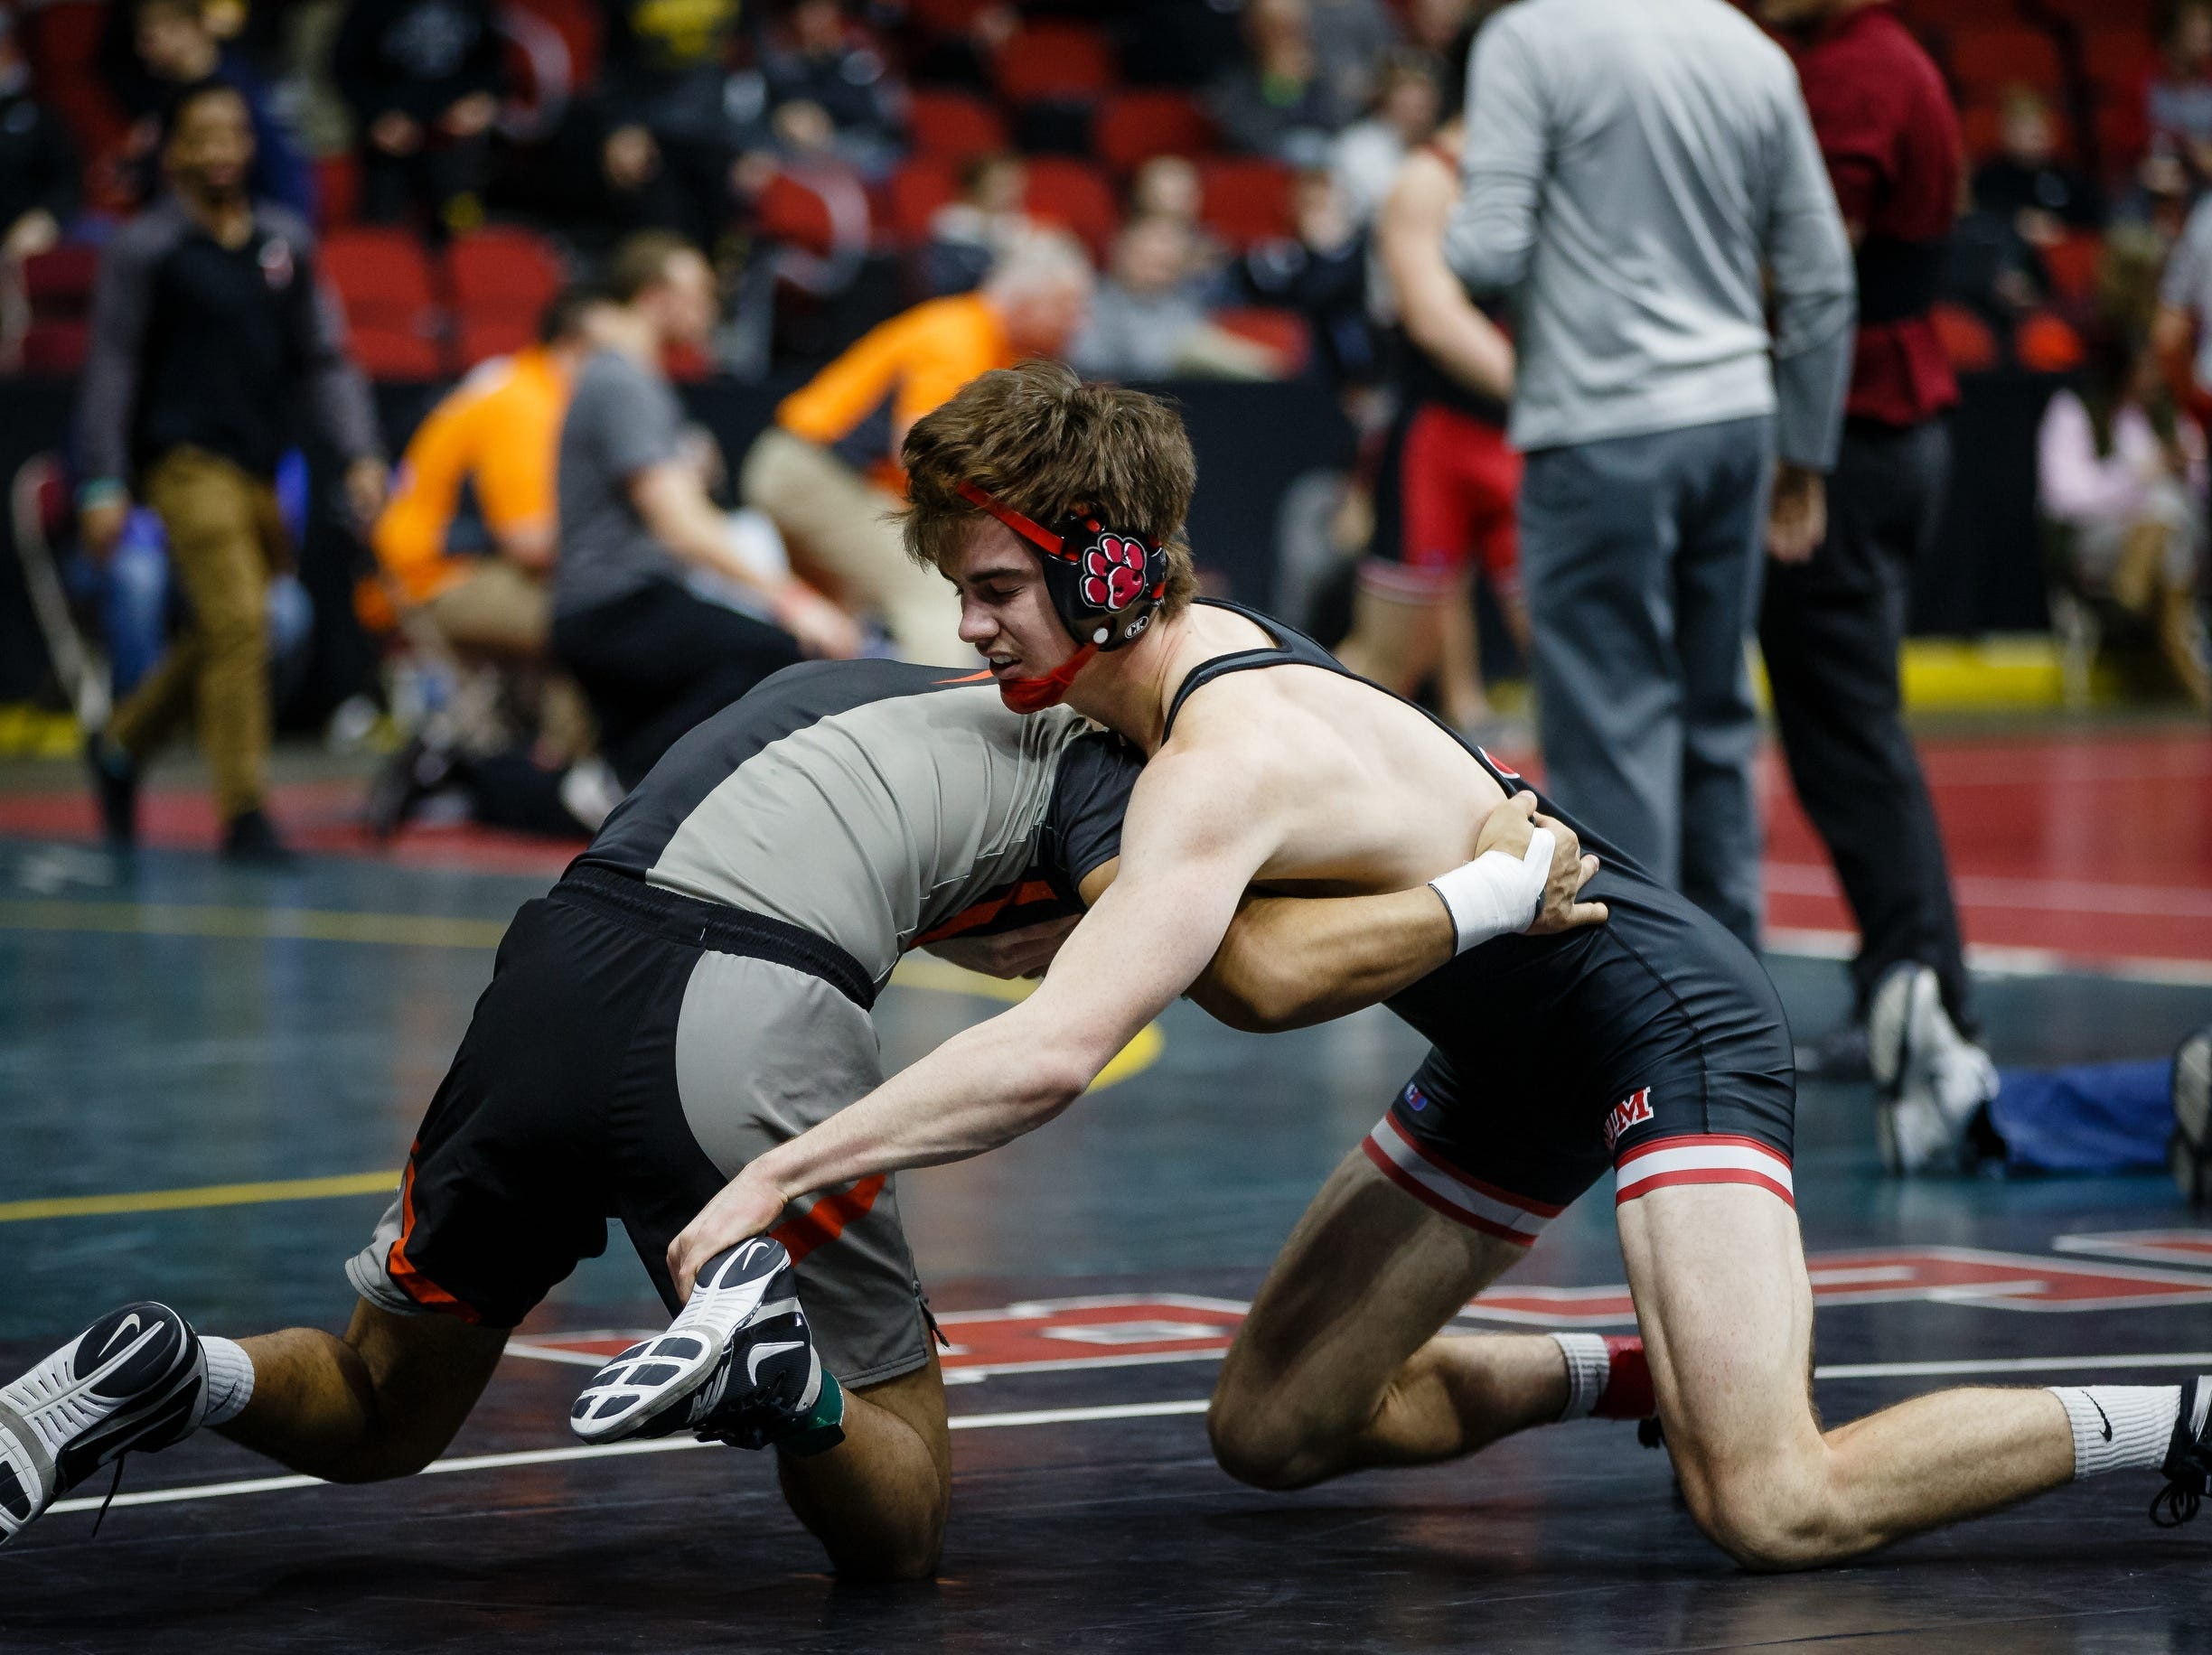 Nolan Harsh of ADM wrestles Tristin Westphal of Washington during their class 2A 182 pound state championship semi-final match on Friday, Feb. 15, 2019 in Des Moines. Westphal advances to the finals.